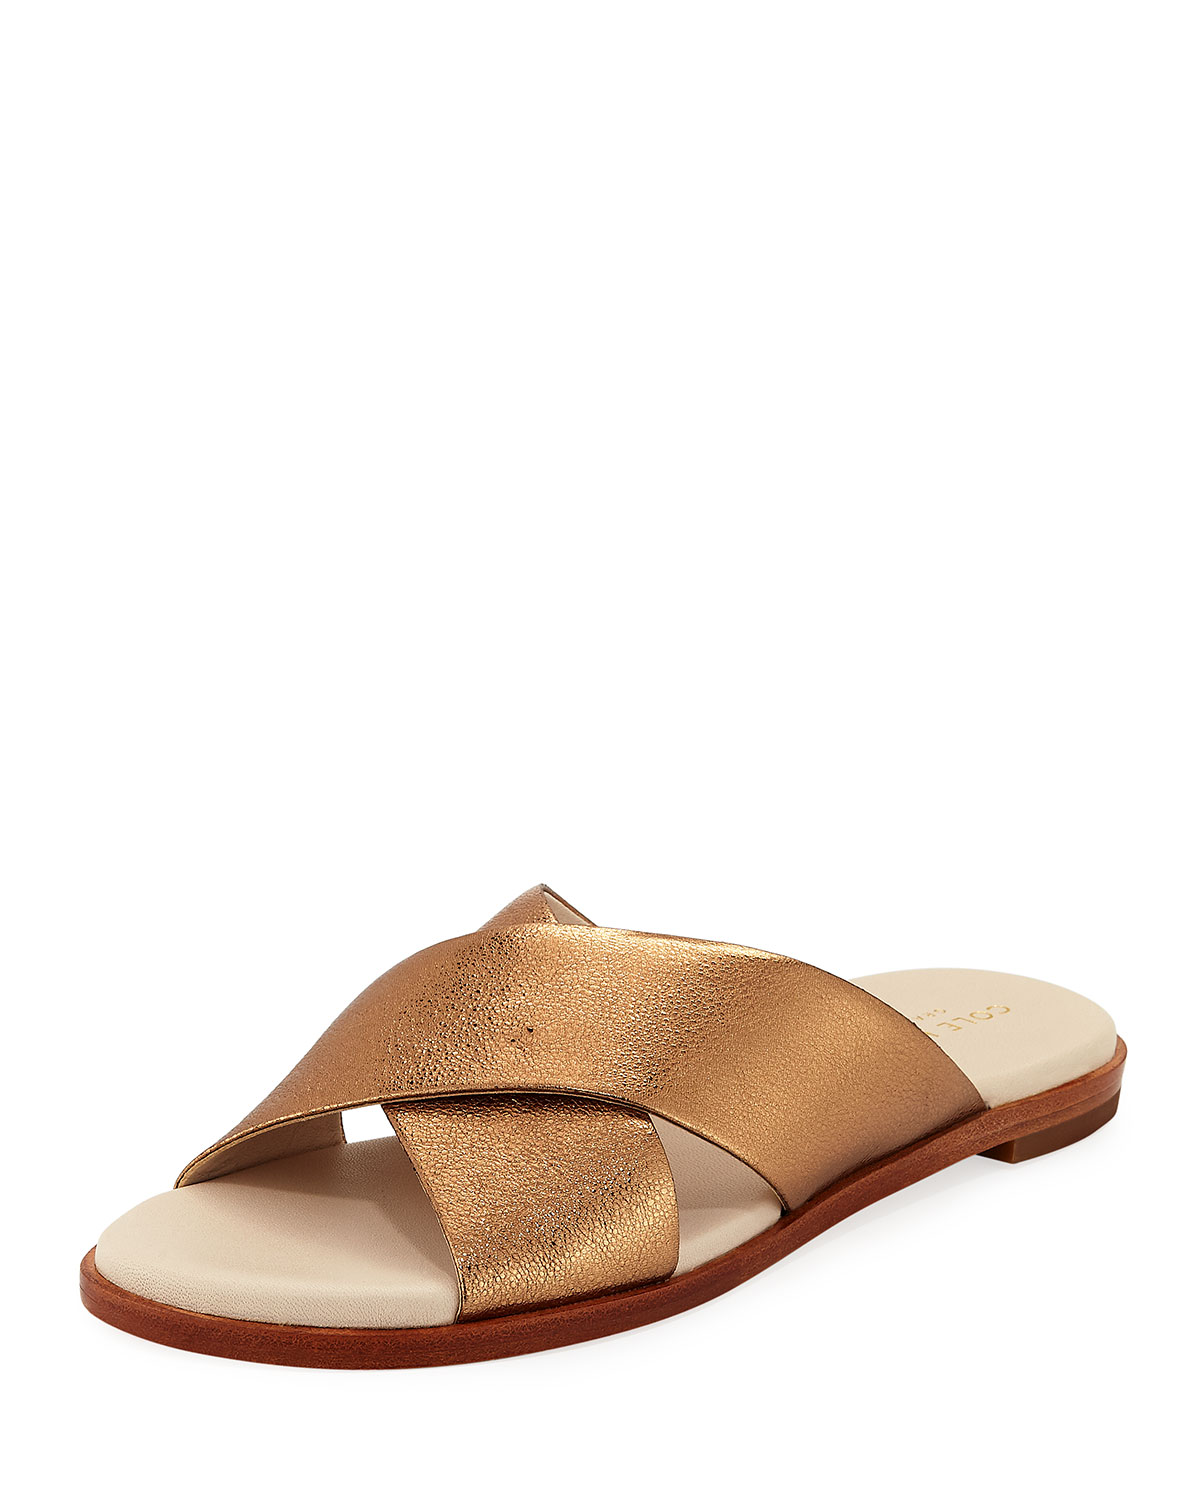 81a4b6c32c6 Cole Haan Anica Grand Crisscross Metallic Sandals